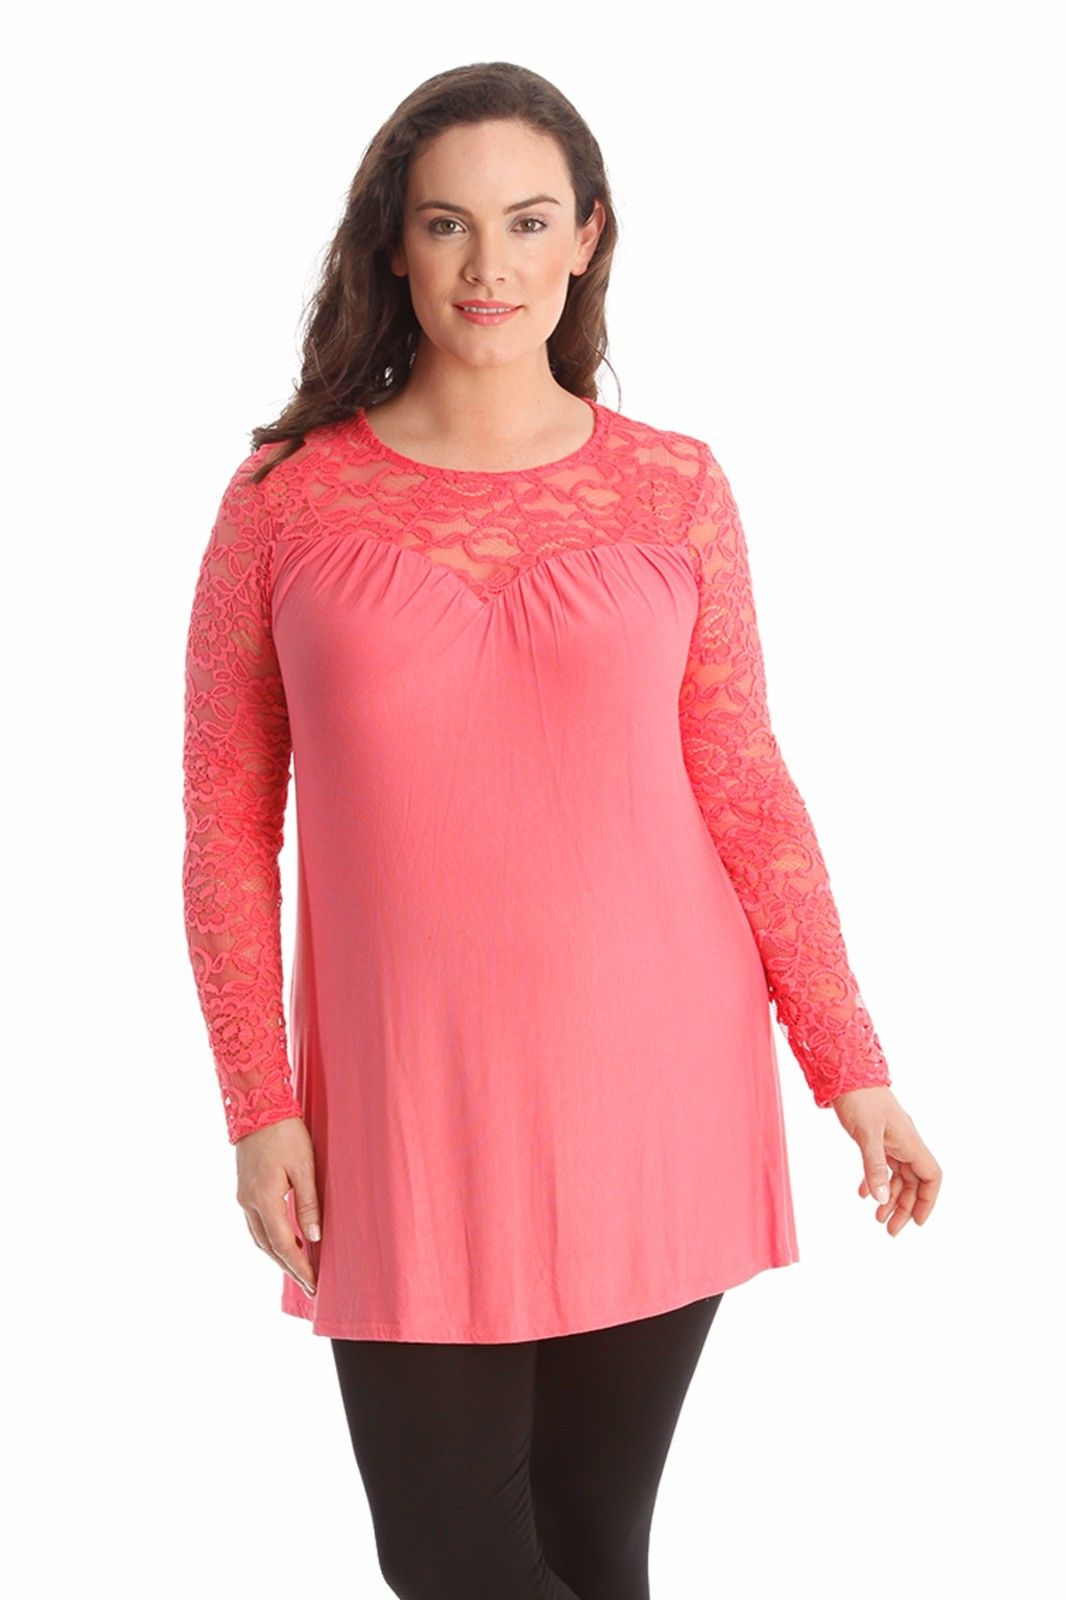 Buy New Womens Plus Size Tunic Tops at Macy's. Shop the Latest Plus Size Blouses & Shirts for Women Online at neo-craft.gq FREE SHIPPING AVAILABLE!